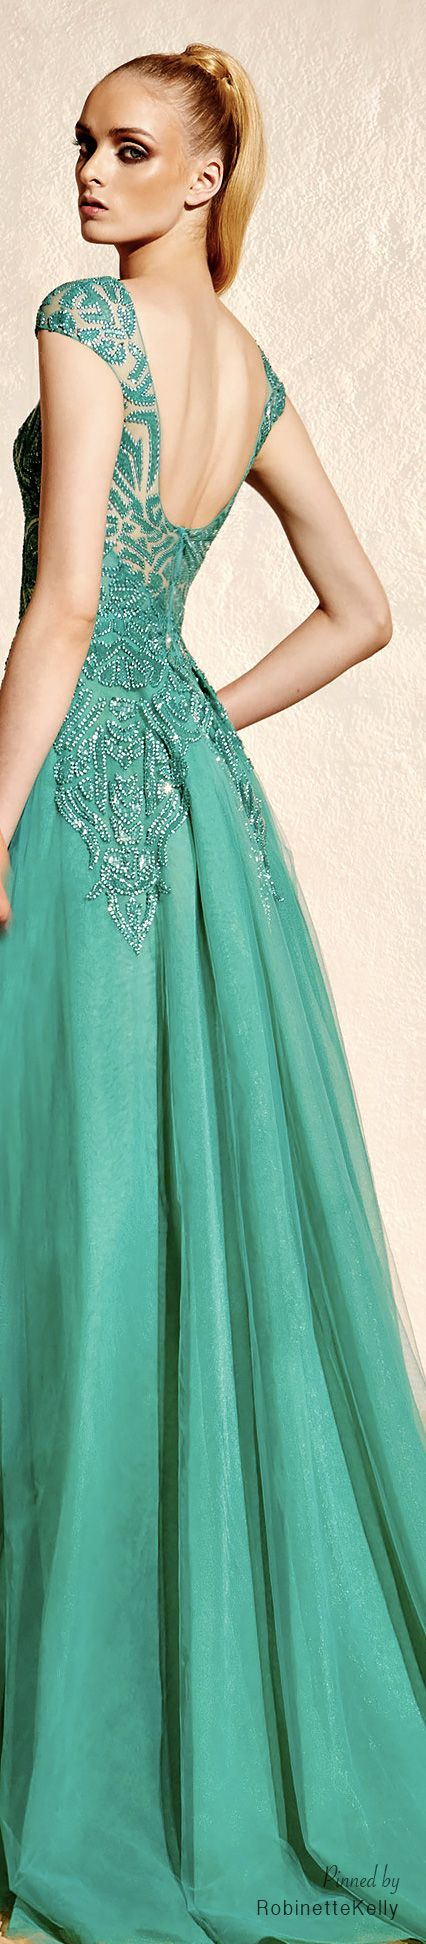 850 best EVENING DRESSES images on Pinterest | Party dresses, Party ...